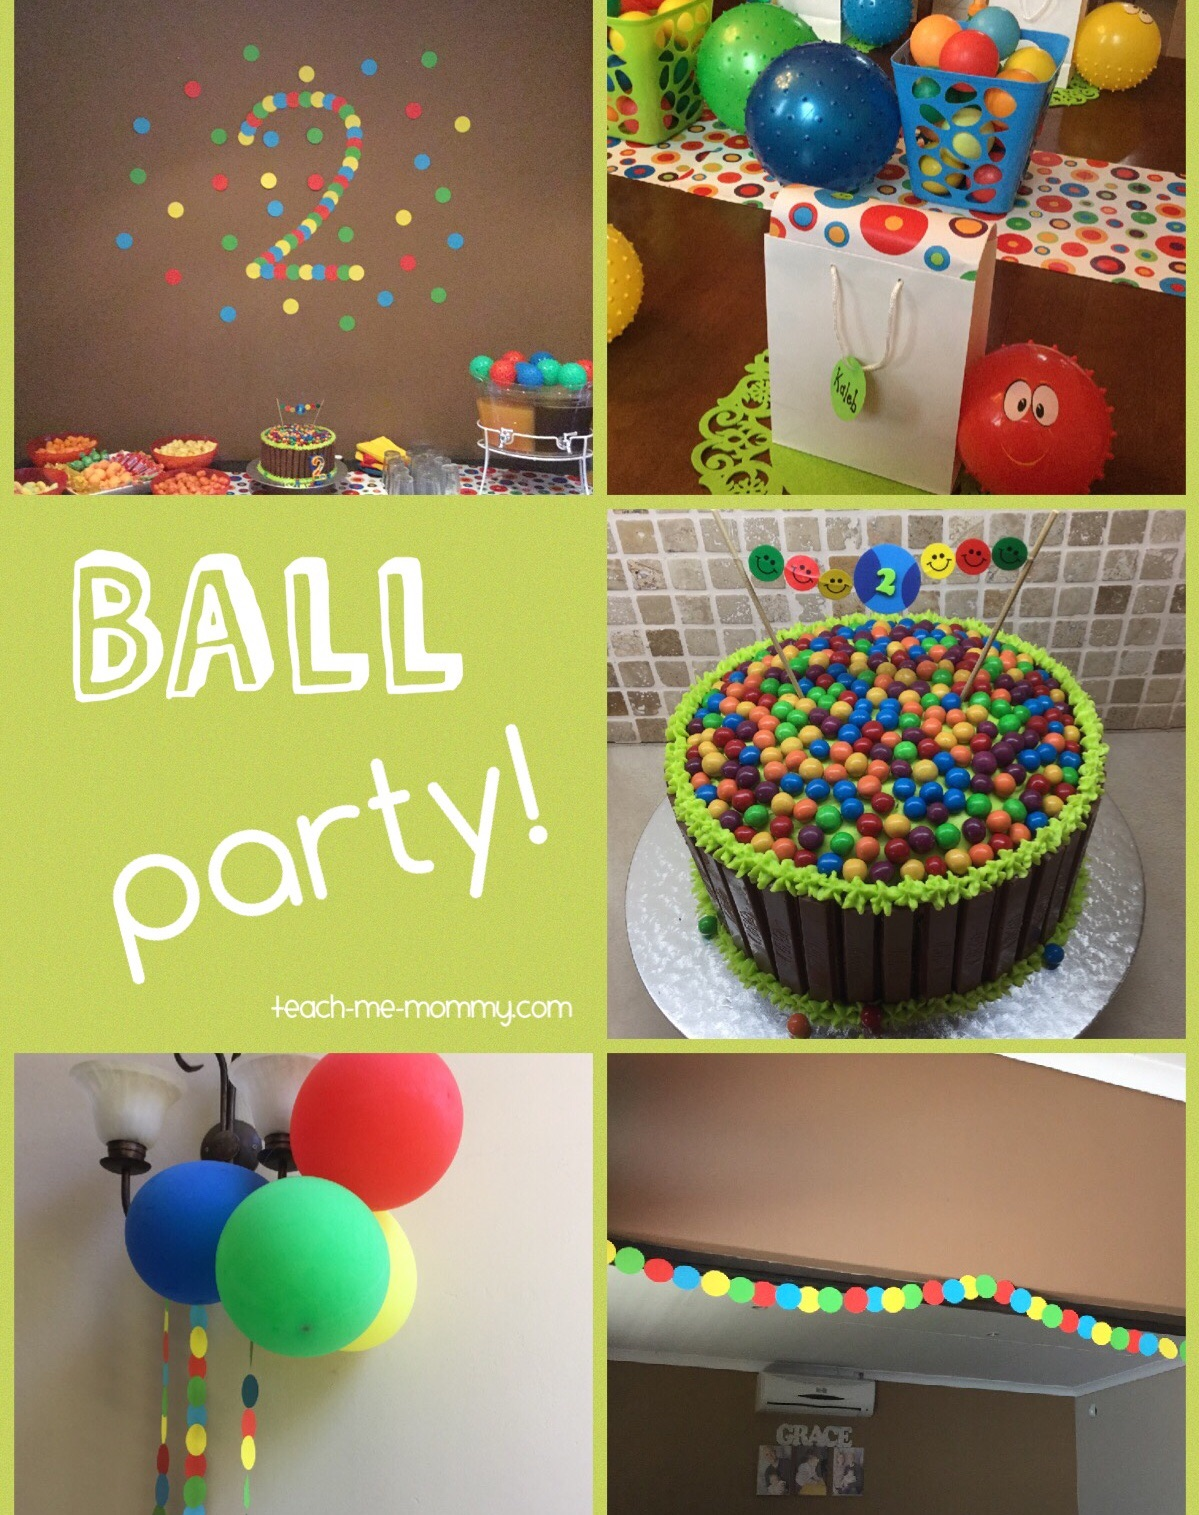 Ball Themed Party for a 2 Year Old - Teach Me Mommy